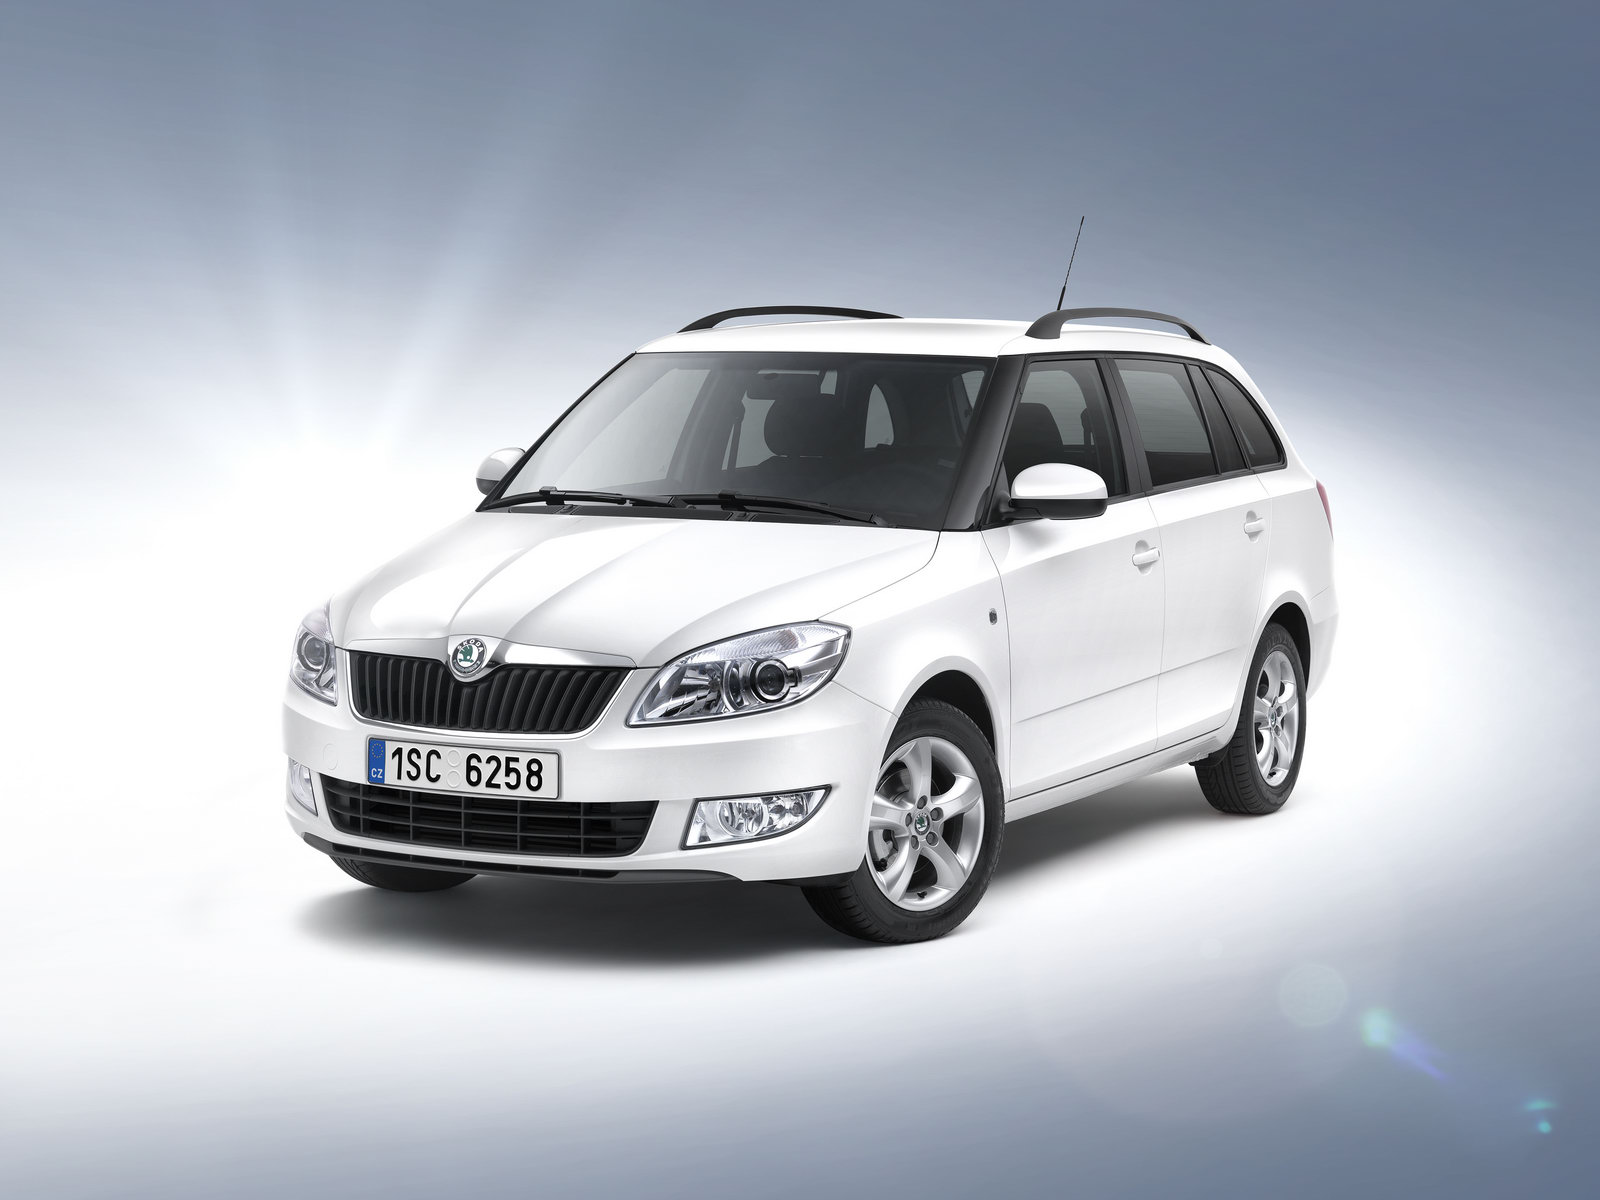 new skoda fabia estate greenline with and 89g km of co2 priced at 13 740 in the uk. Black Bedroom Furniture Sets. Home Design Ideas